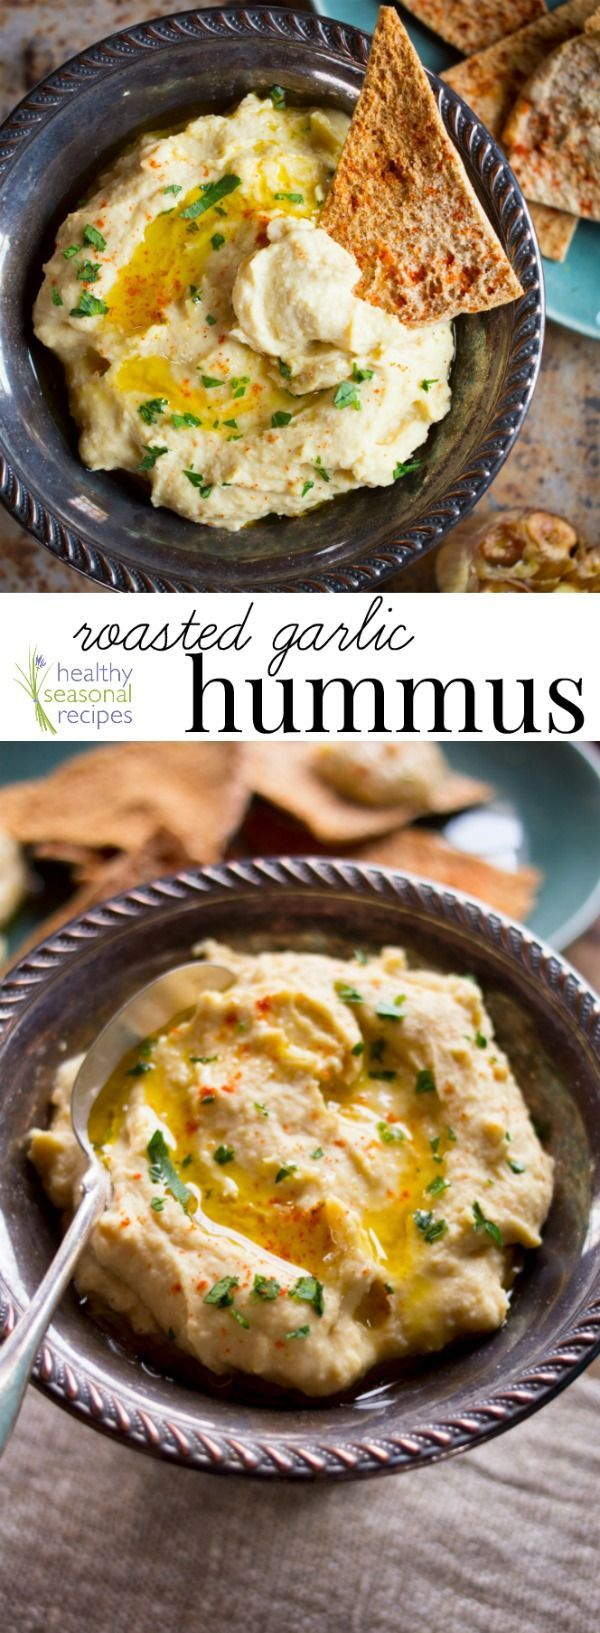 Roasted Garlic Hummus, one of the top recipes on healthyseasonalrecipes.com for more than 3 years running. Naturally vegan and gluten-free. Healthy Seasonal Recipes.